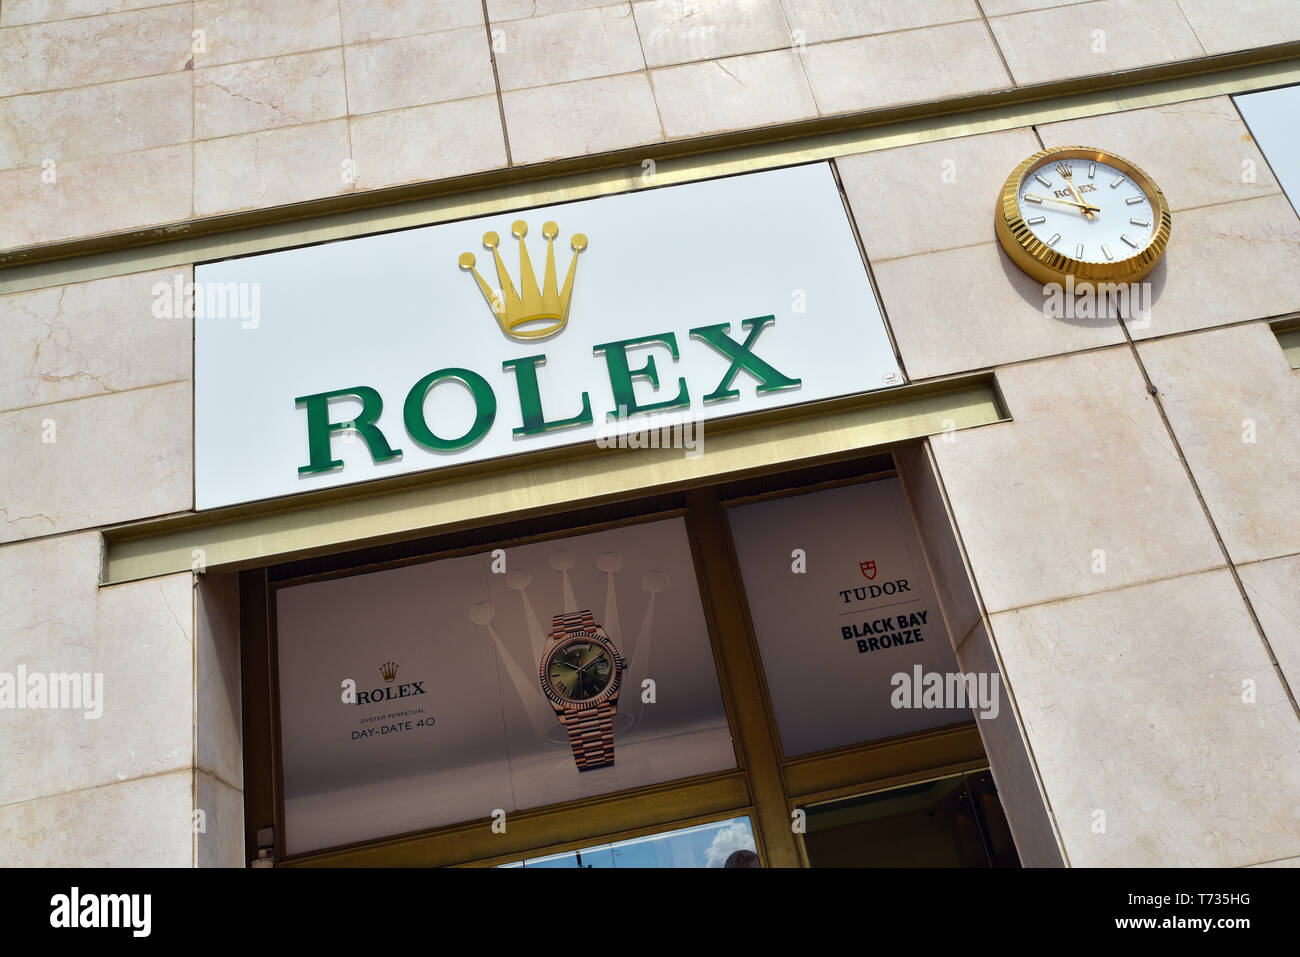 Rolex store - Stock Image